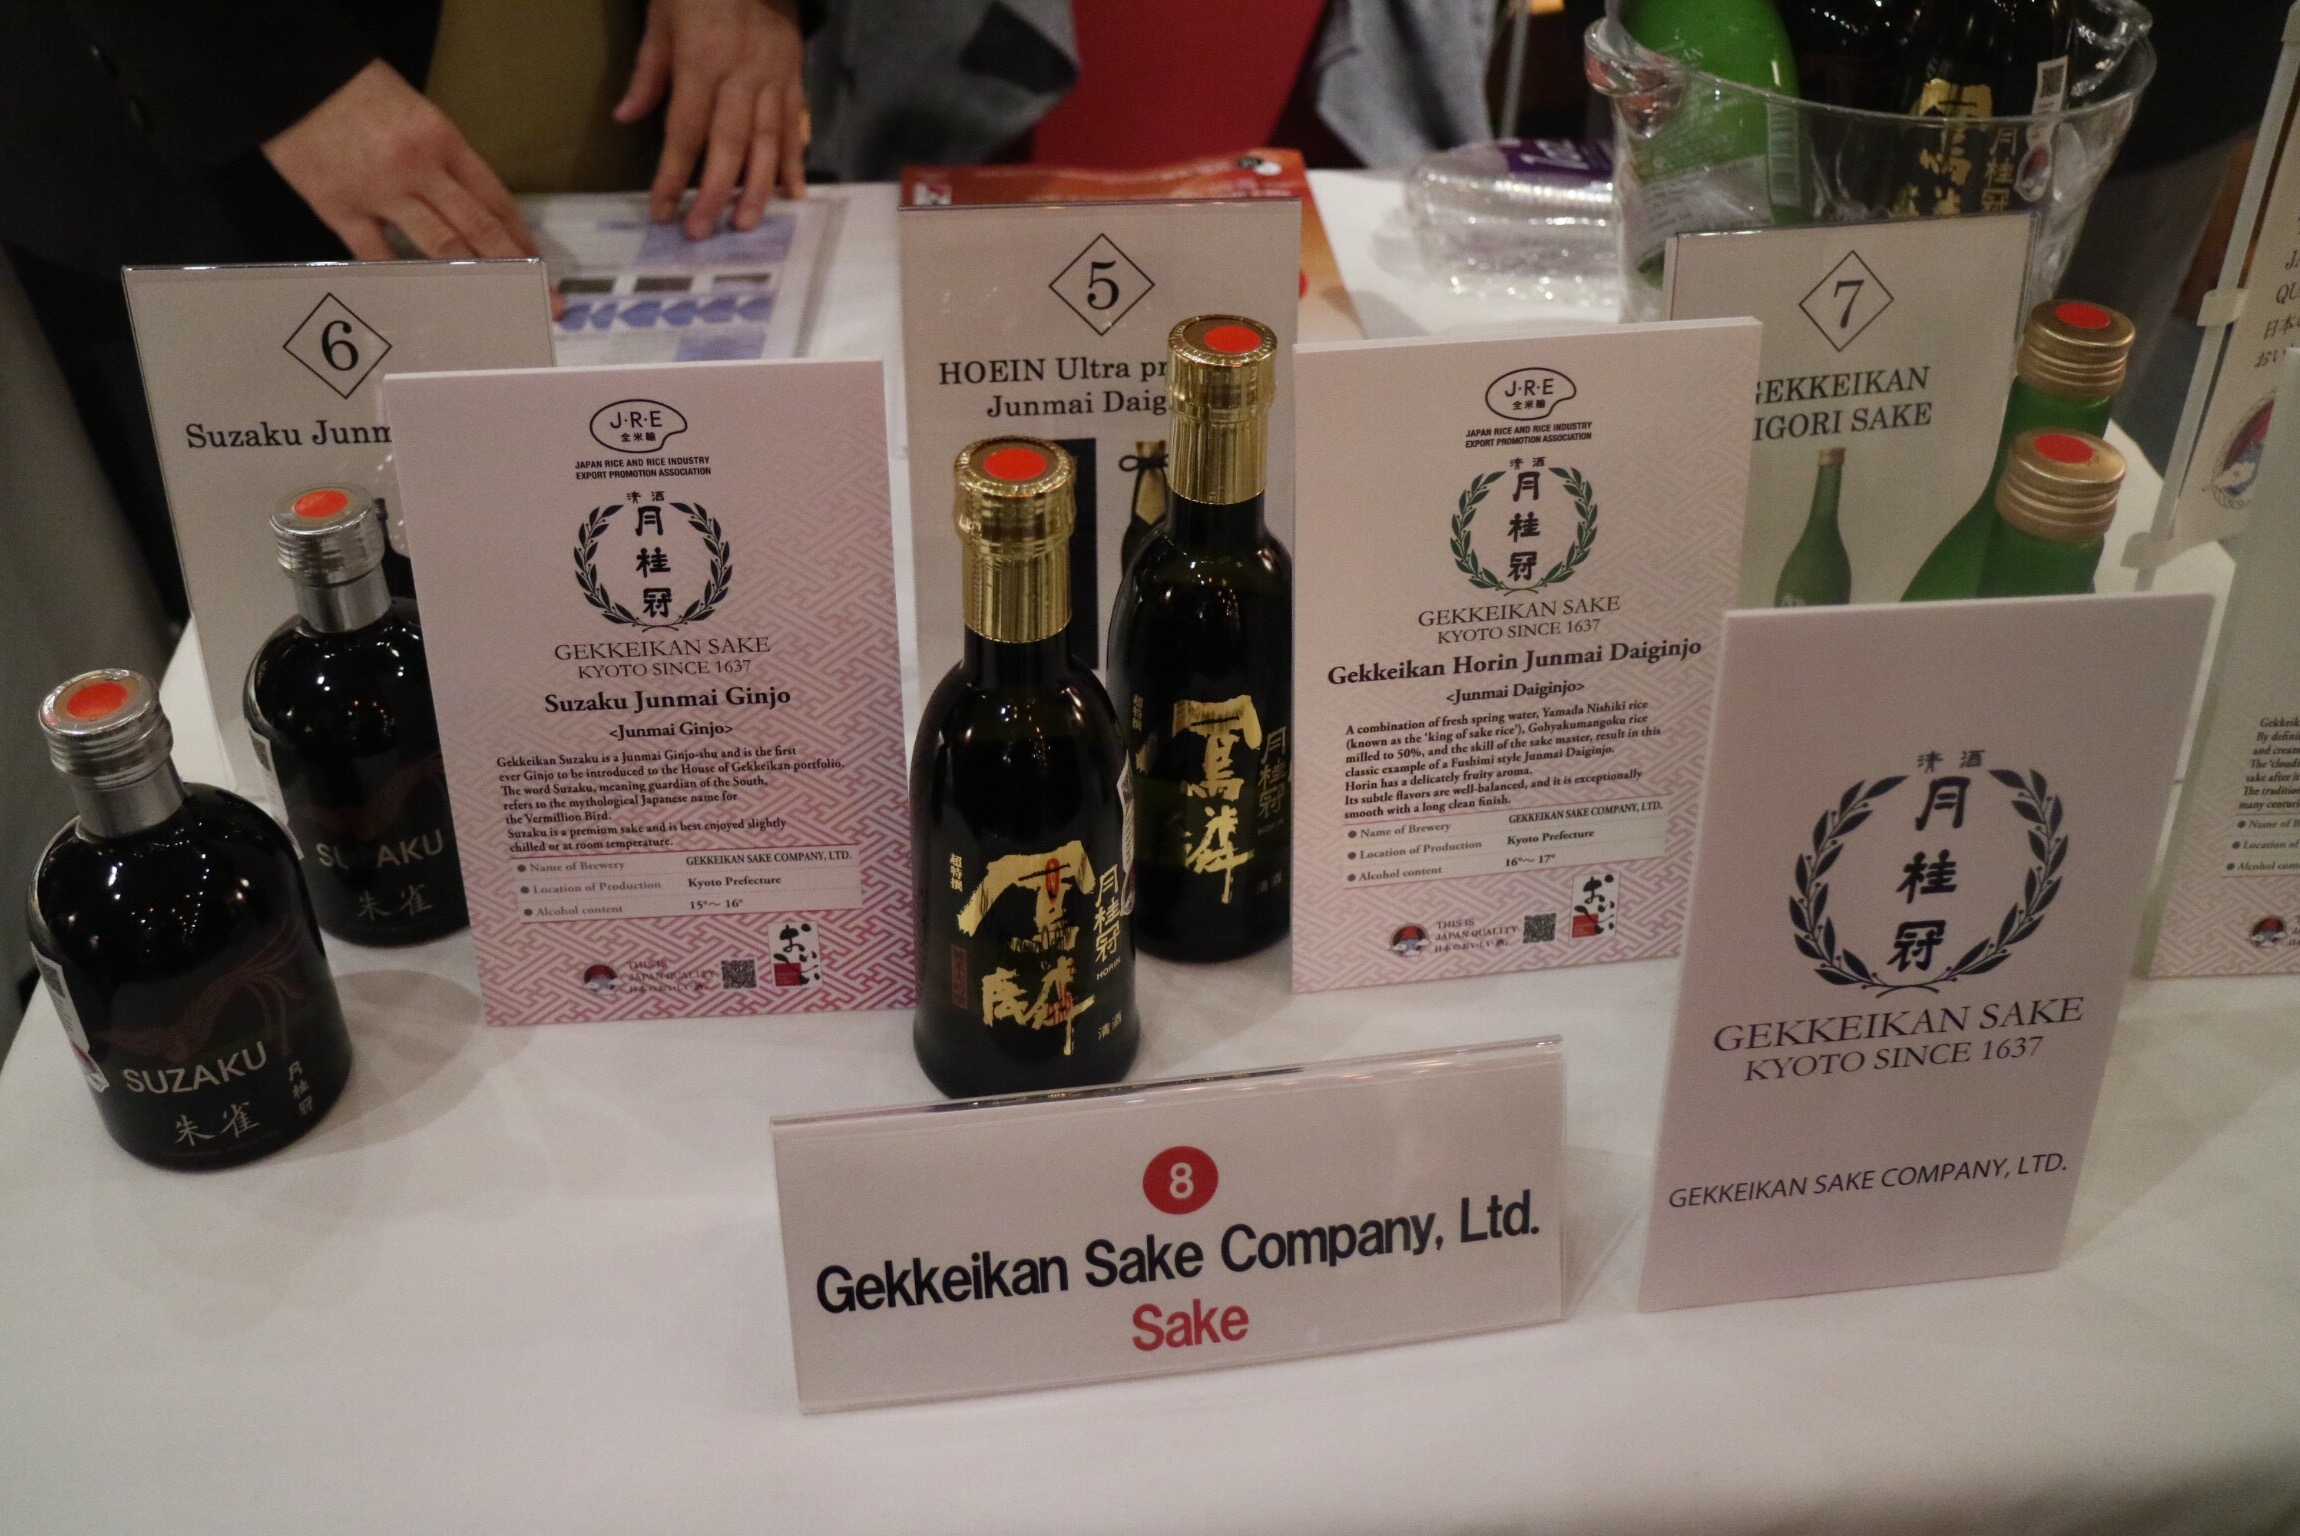 sake products from Gekkeikan